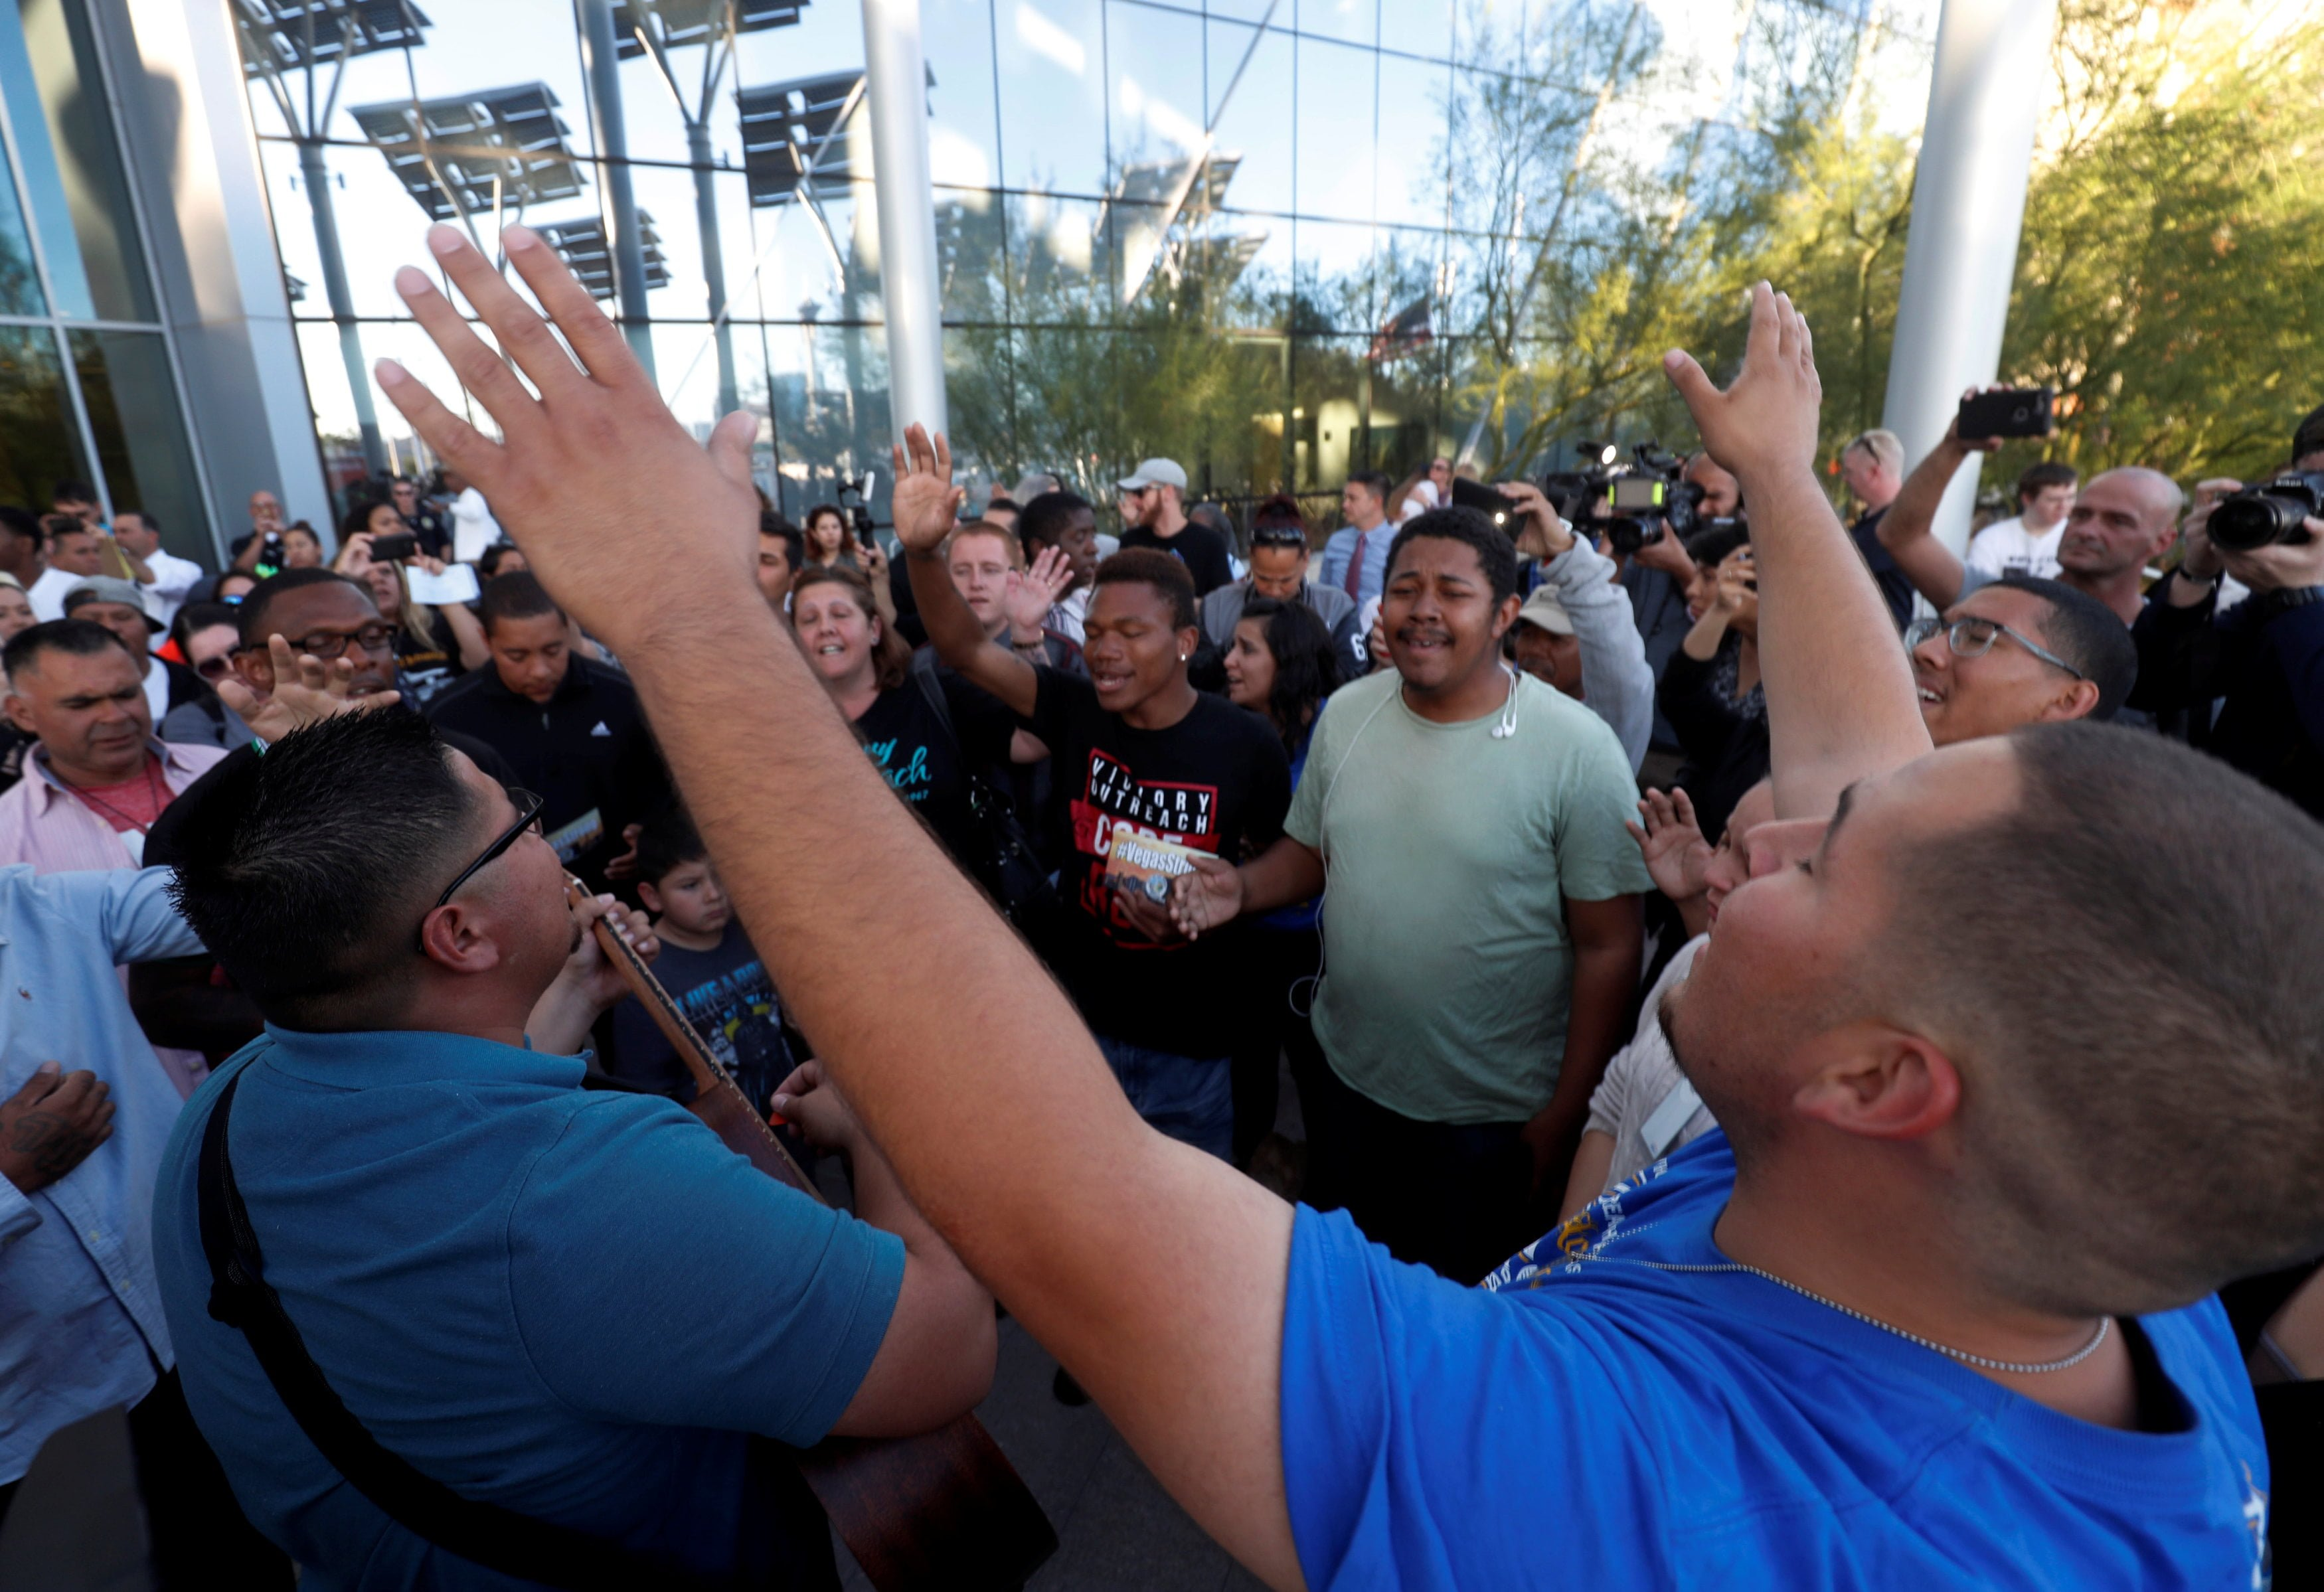 People sing during a prayer vigil in honor of those affected by the shooting in Las Vegas